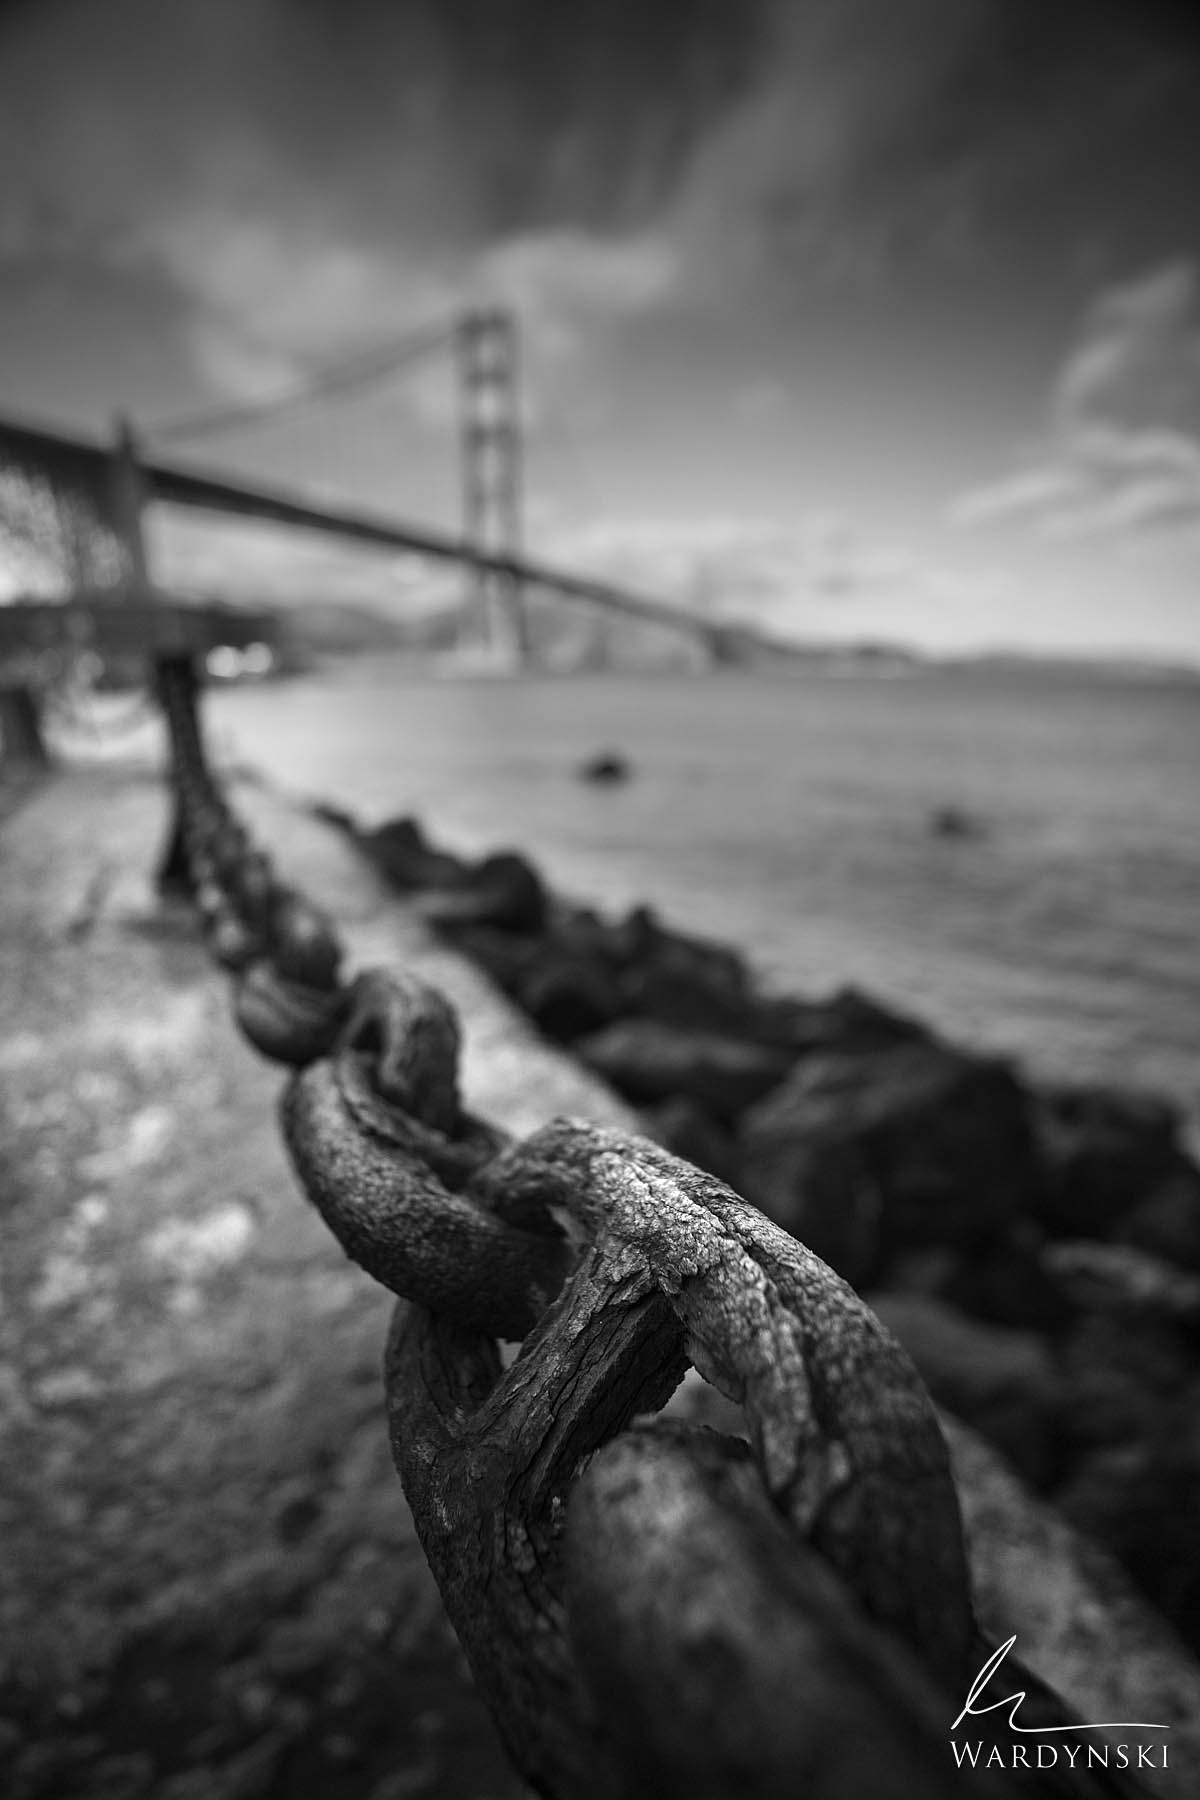 Black and White Fine Art Print | Limited Edition of 50  Large heavily corroded chains hang in front of the Golden Gate Bridge...